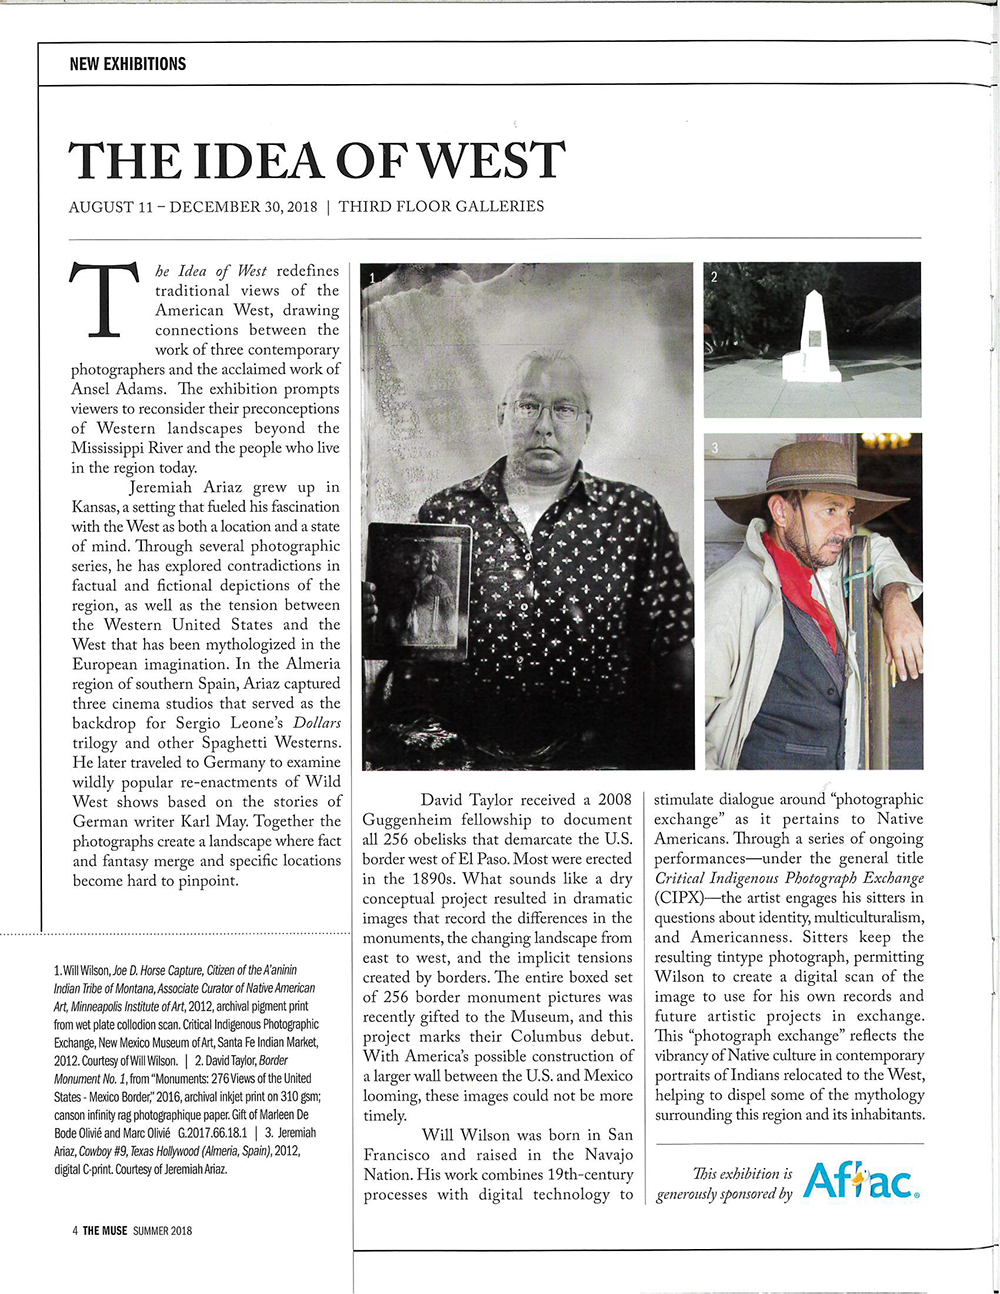 101_Idea of West page MUSE Summer 2018 copy.jpg